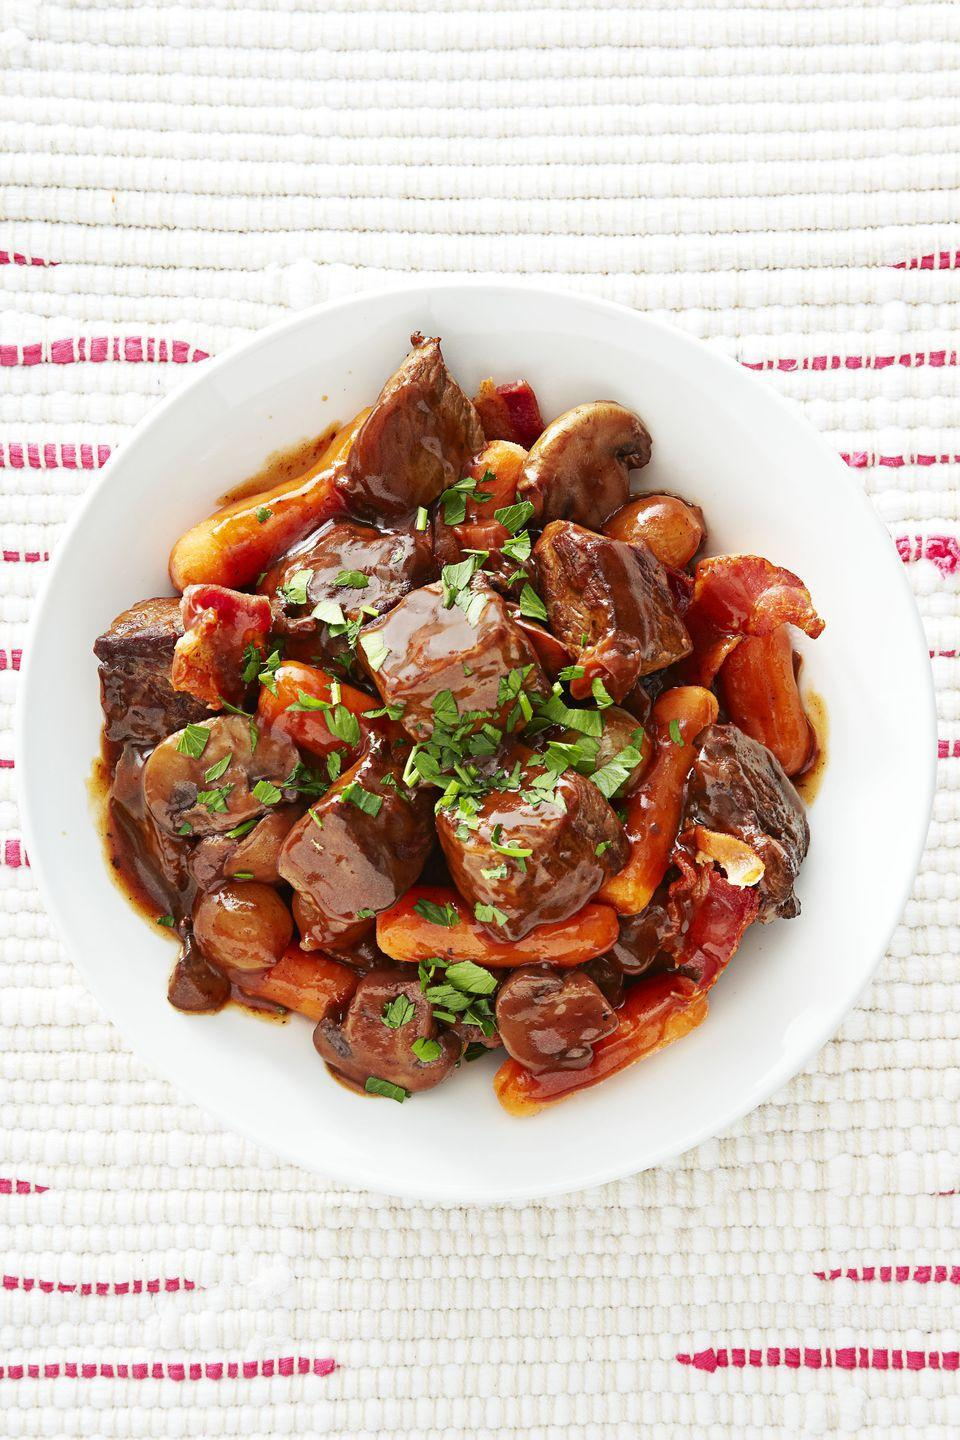 "<p>Loaded with tender beef, savory mushrooms, and an indulgent red wine sauce, this classic dish is really all anyone could want on a chilly winter night.</p><p><a href=""https://www.goodhousekeeping.com/food-recipes/a16383/beef-mushroom-burgundy-recipe-ghk1214/"" rel=""nofollow noopener"" target=""_blank"" data-ylk=""slk:Get the recipe for Beef and Mushroom Burgundy »"" class=""link rapid-noclick-resp""><em>Get the recipe for Beef and Mushroom Burgundy »</em></a> </p>"